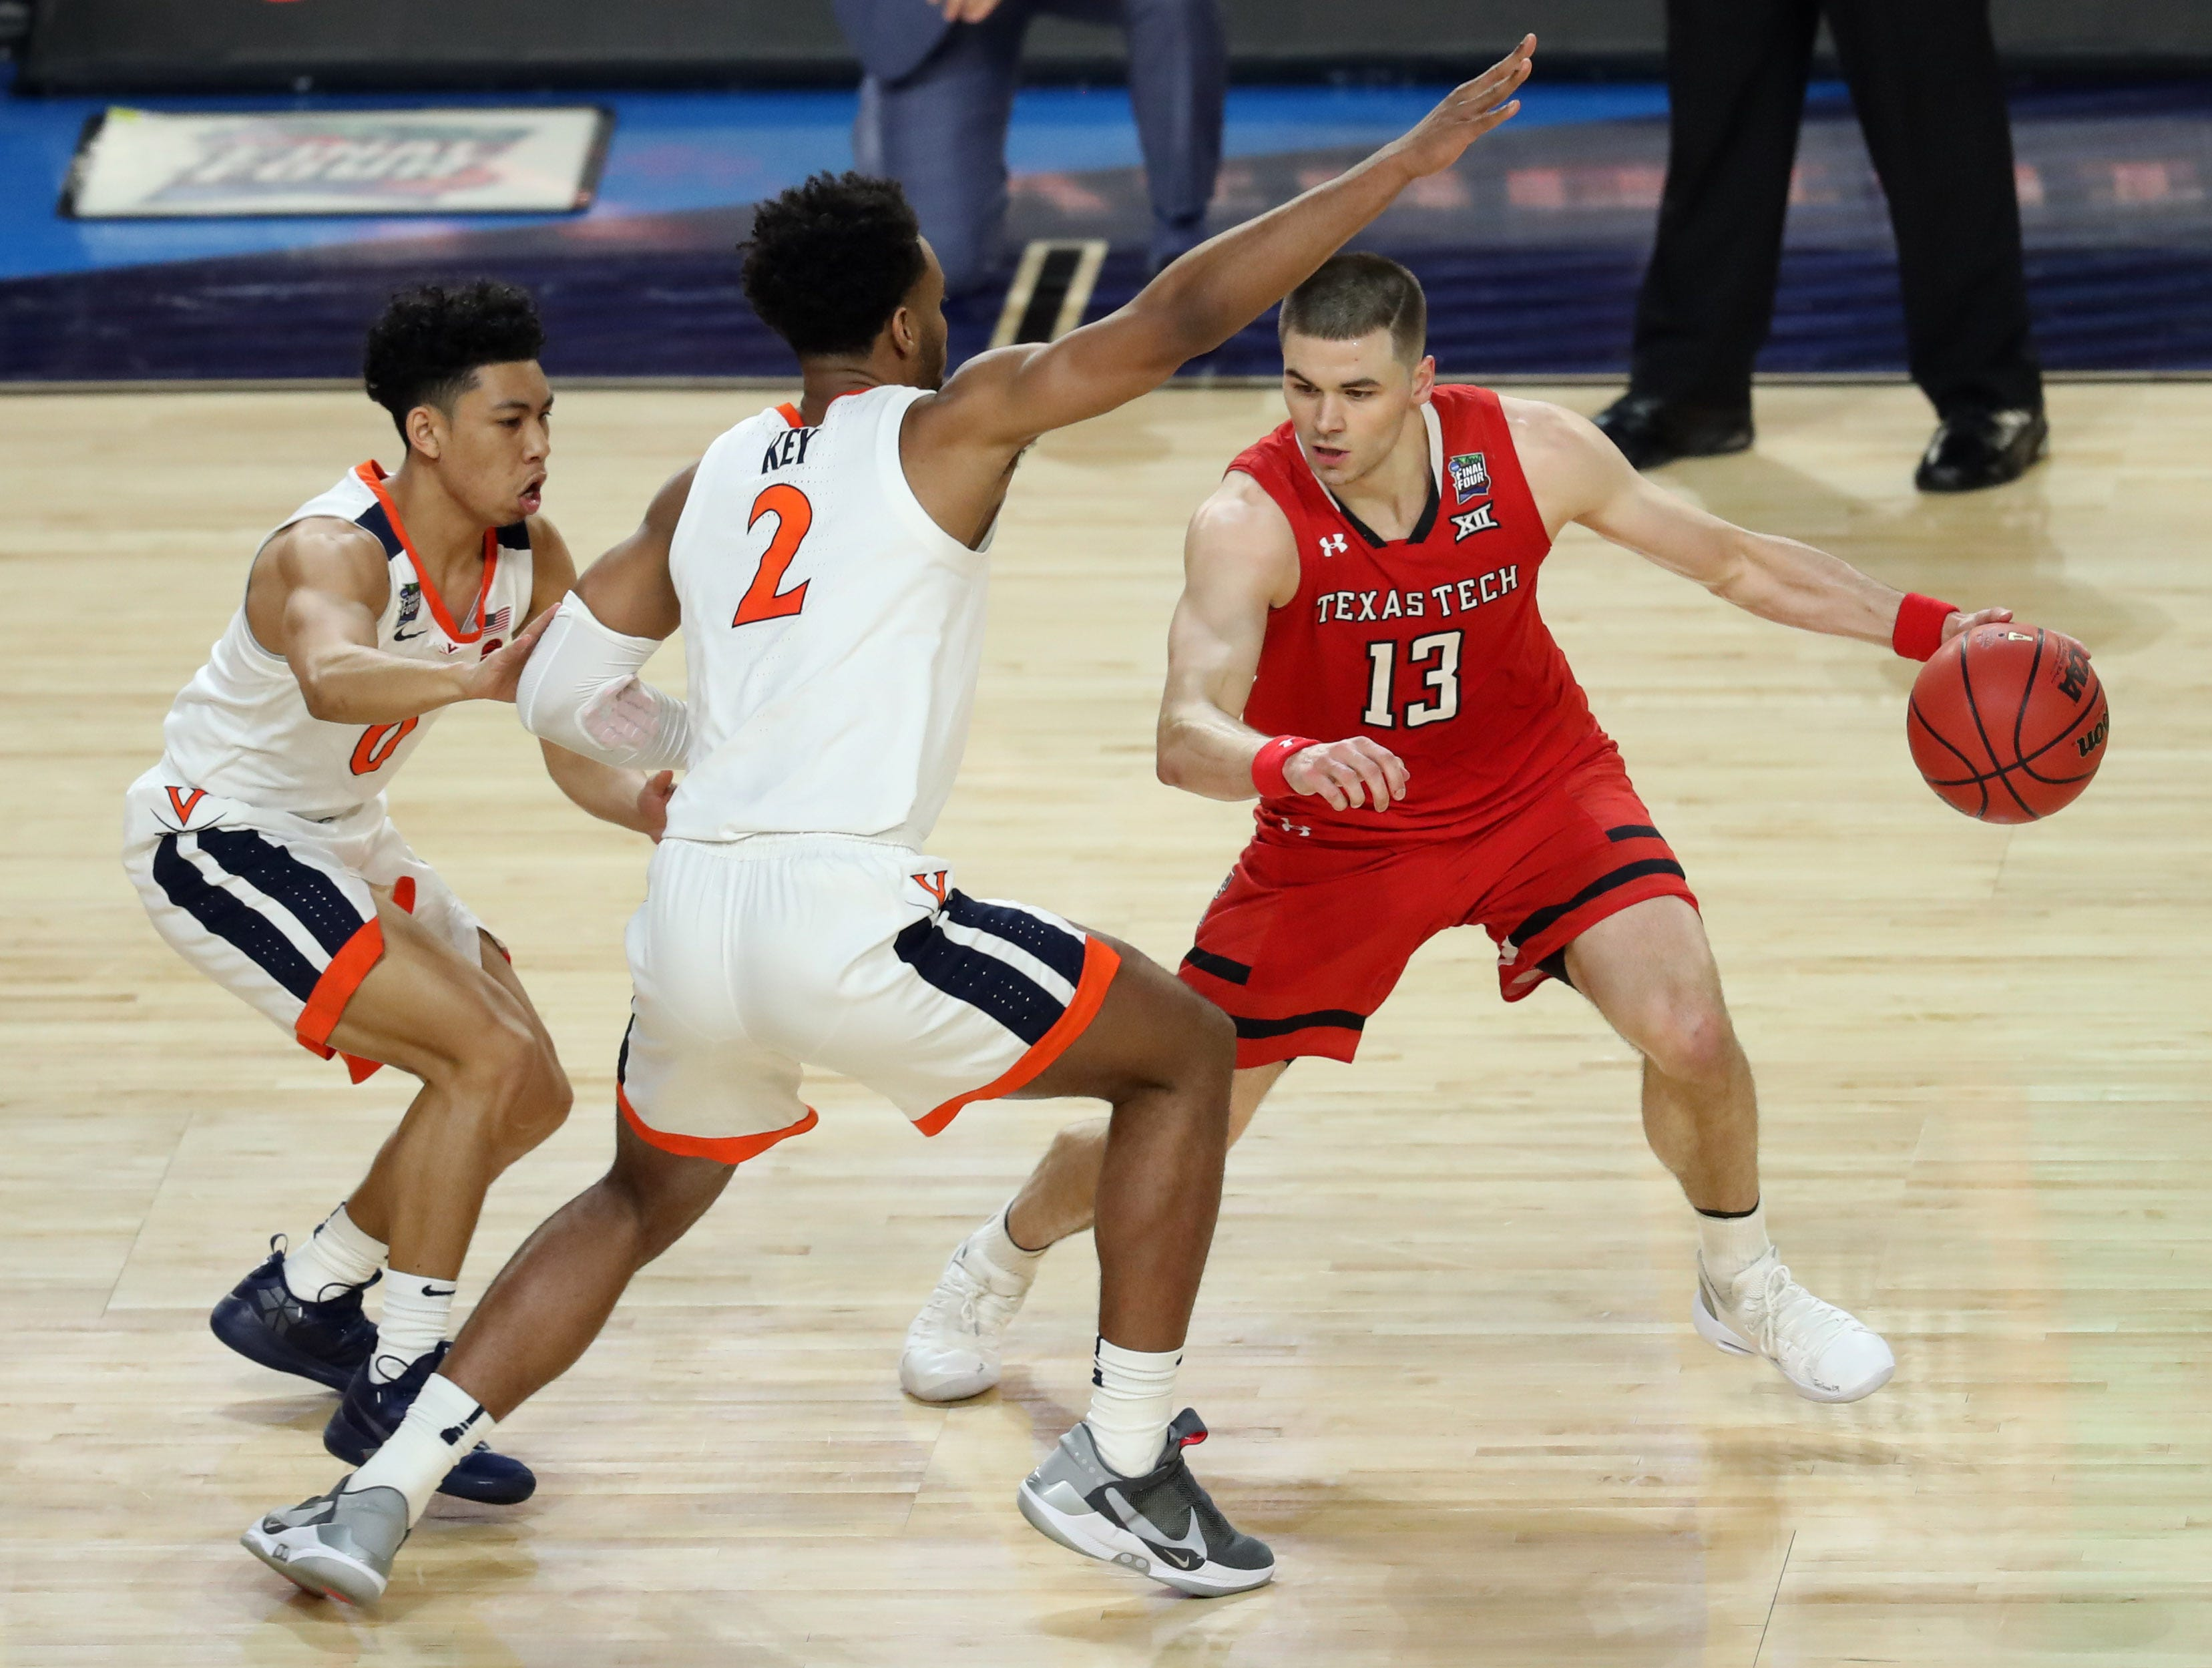 Apr 8, 2019; Minneapolis, MN, USA; Texas Tech Red Raiders guard Matt Mooney (13) drives around Virginia Cavaliers guard Braxton Key (2) during the first half in the championship game of the 2019 men's Final Four at US Bank Stadium. Mandatory Credit: Brace Hemmelgarn-USA TODAY Sports